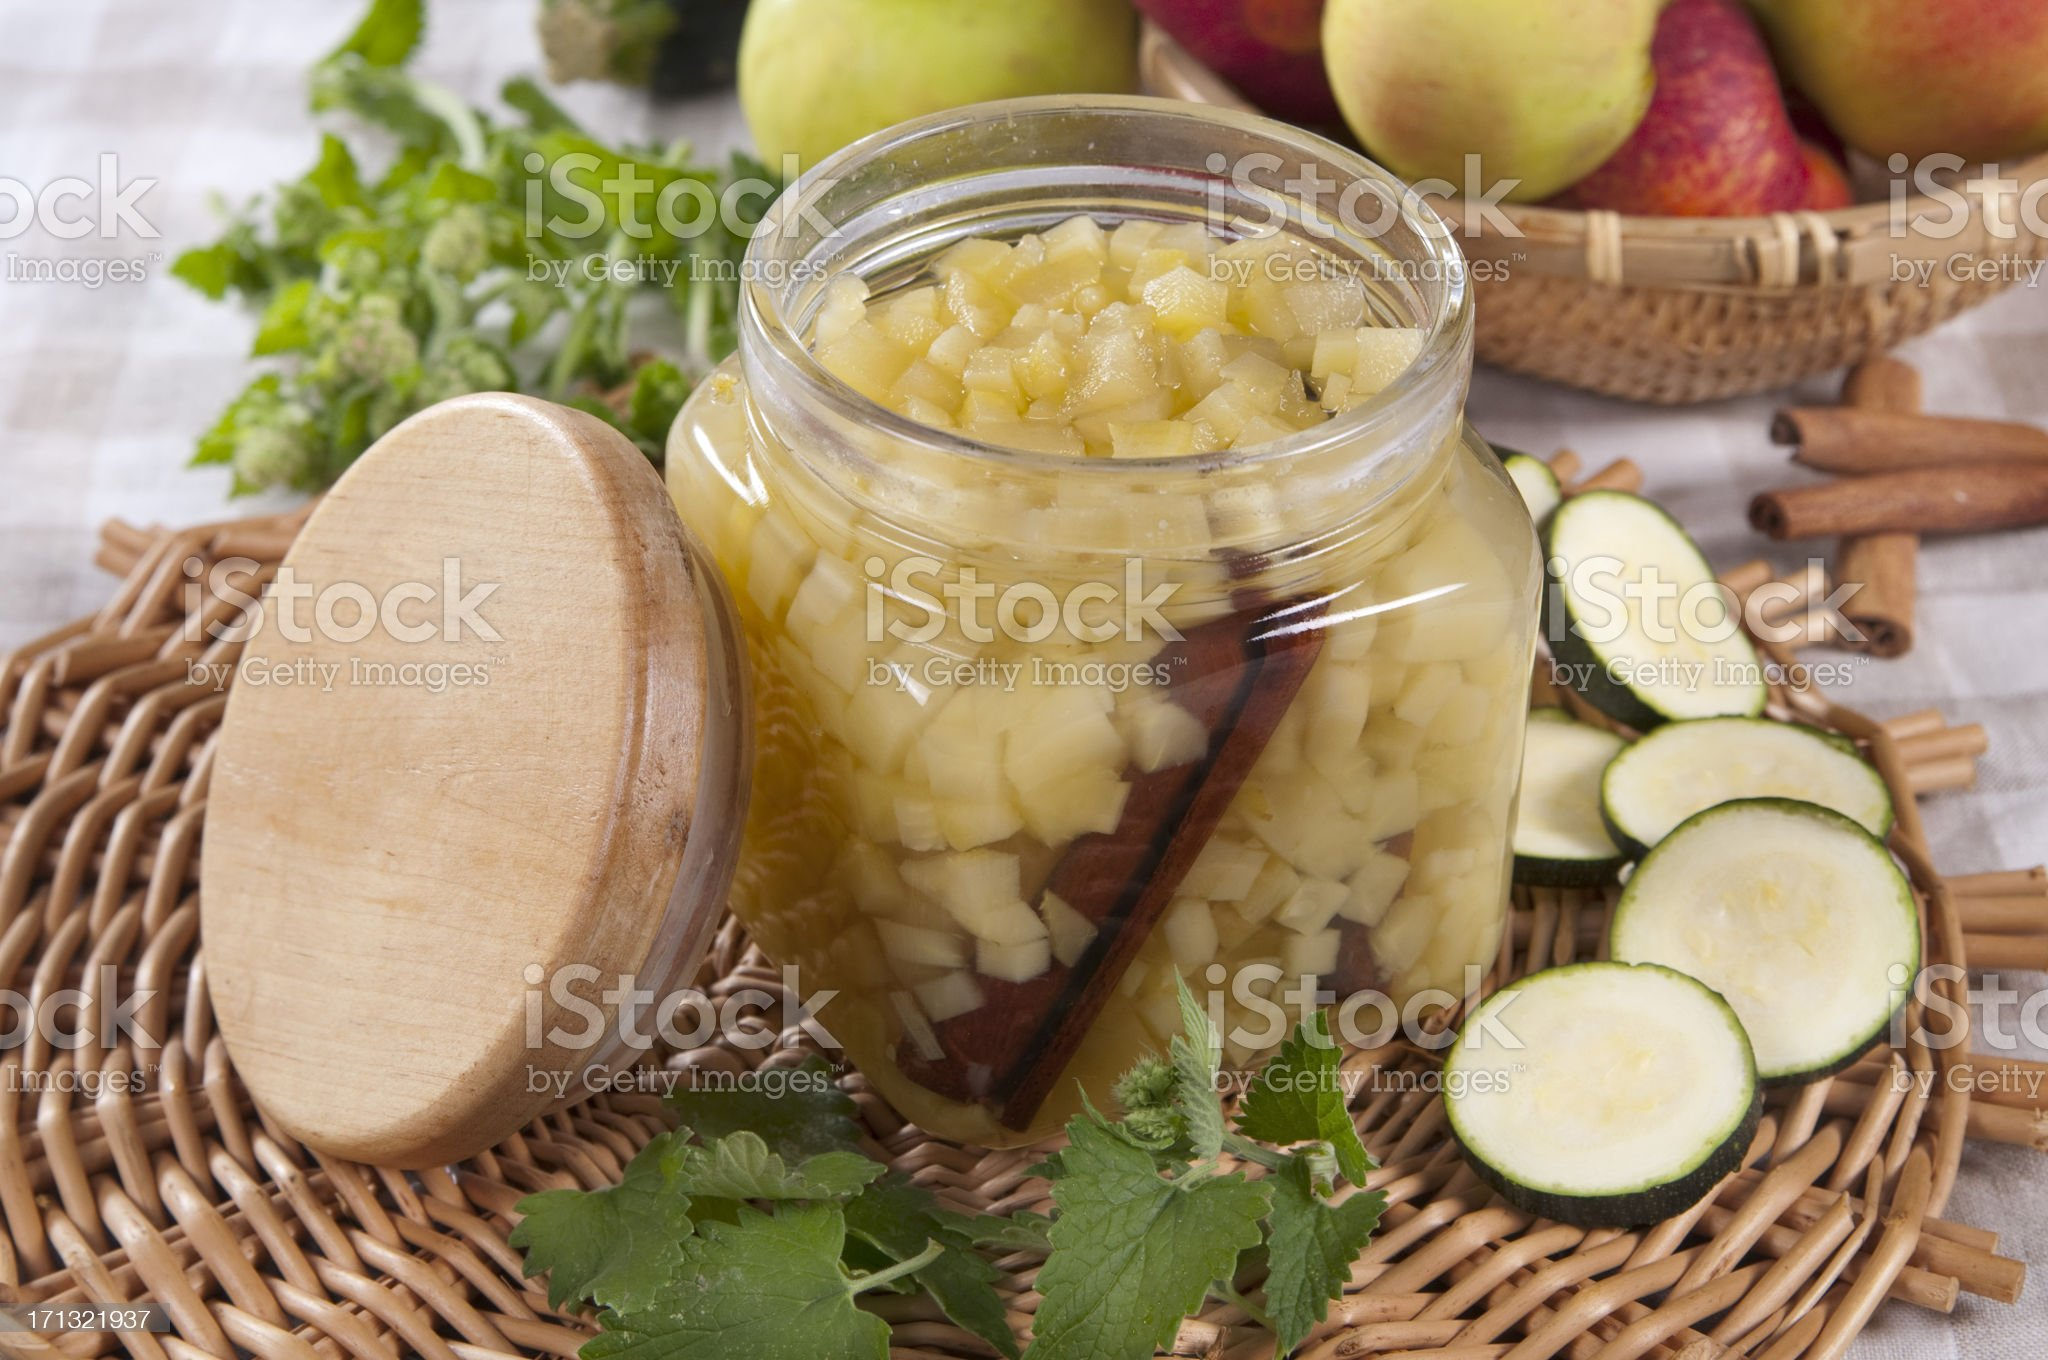 canned apples royalty-free stock photo